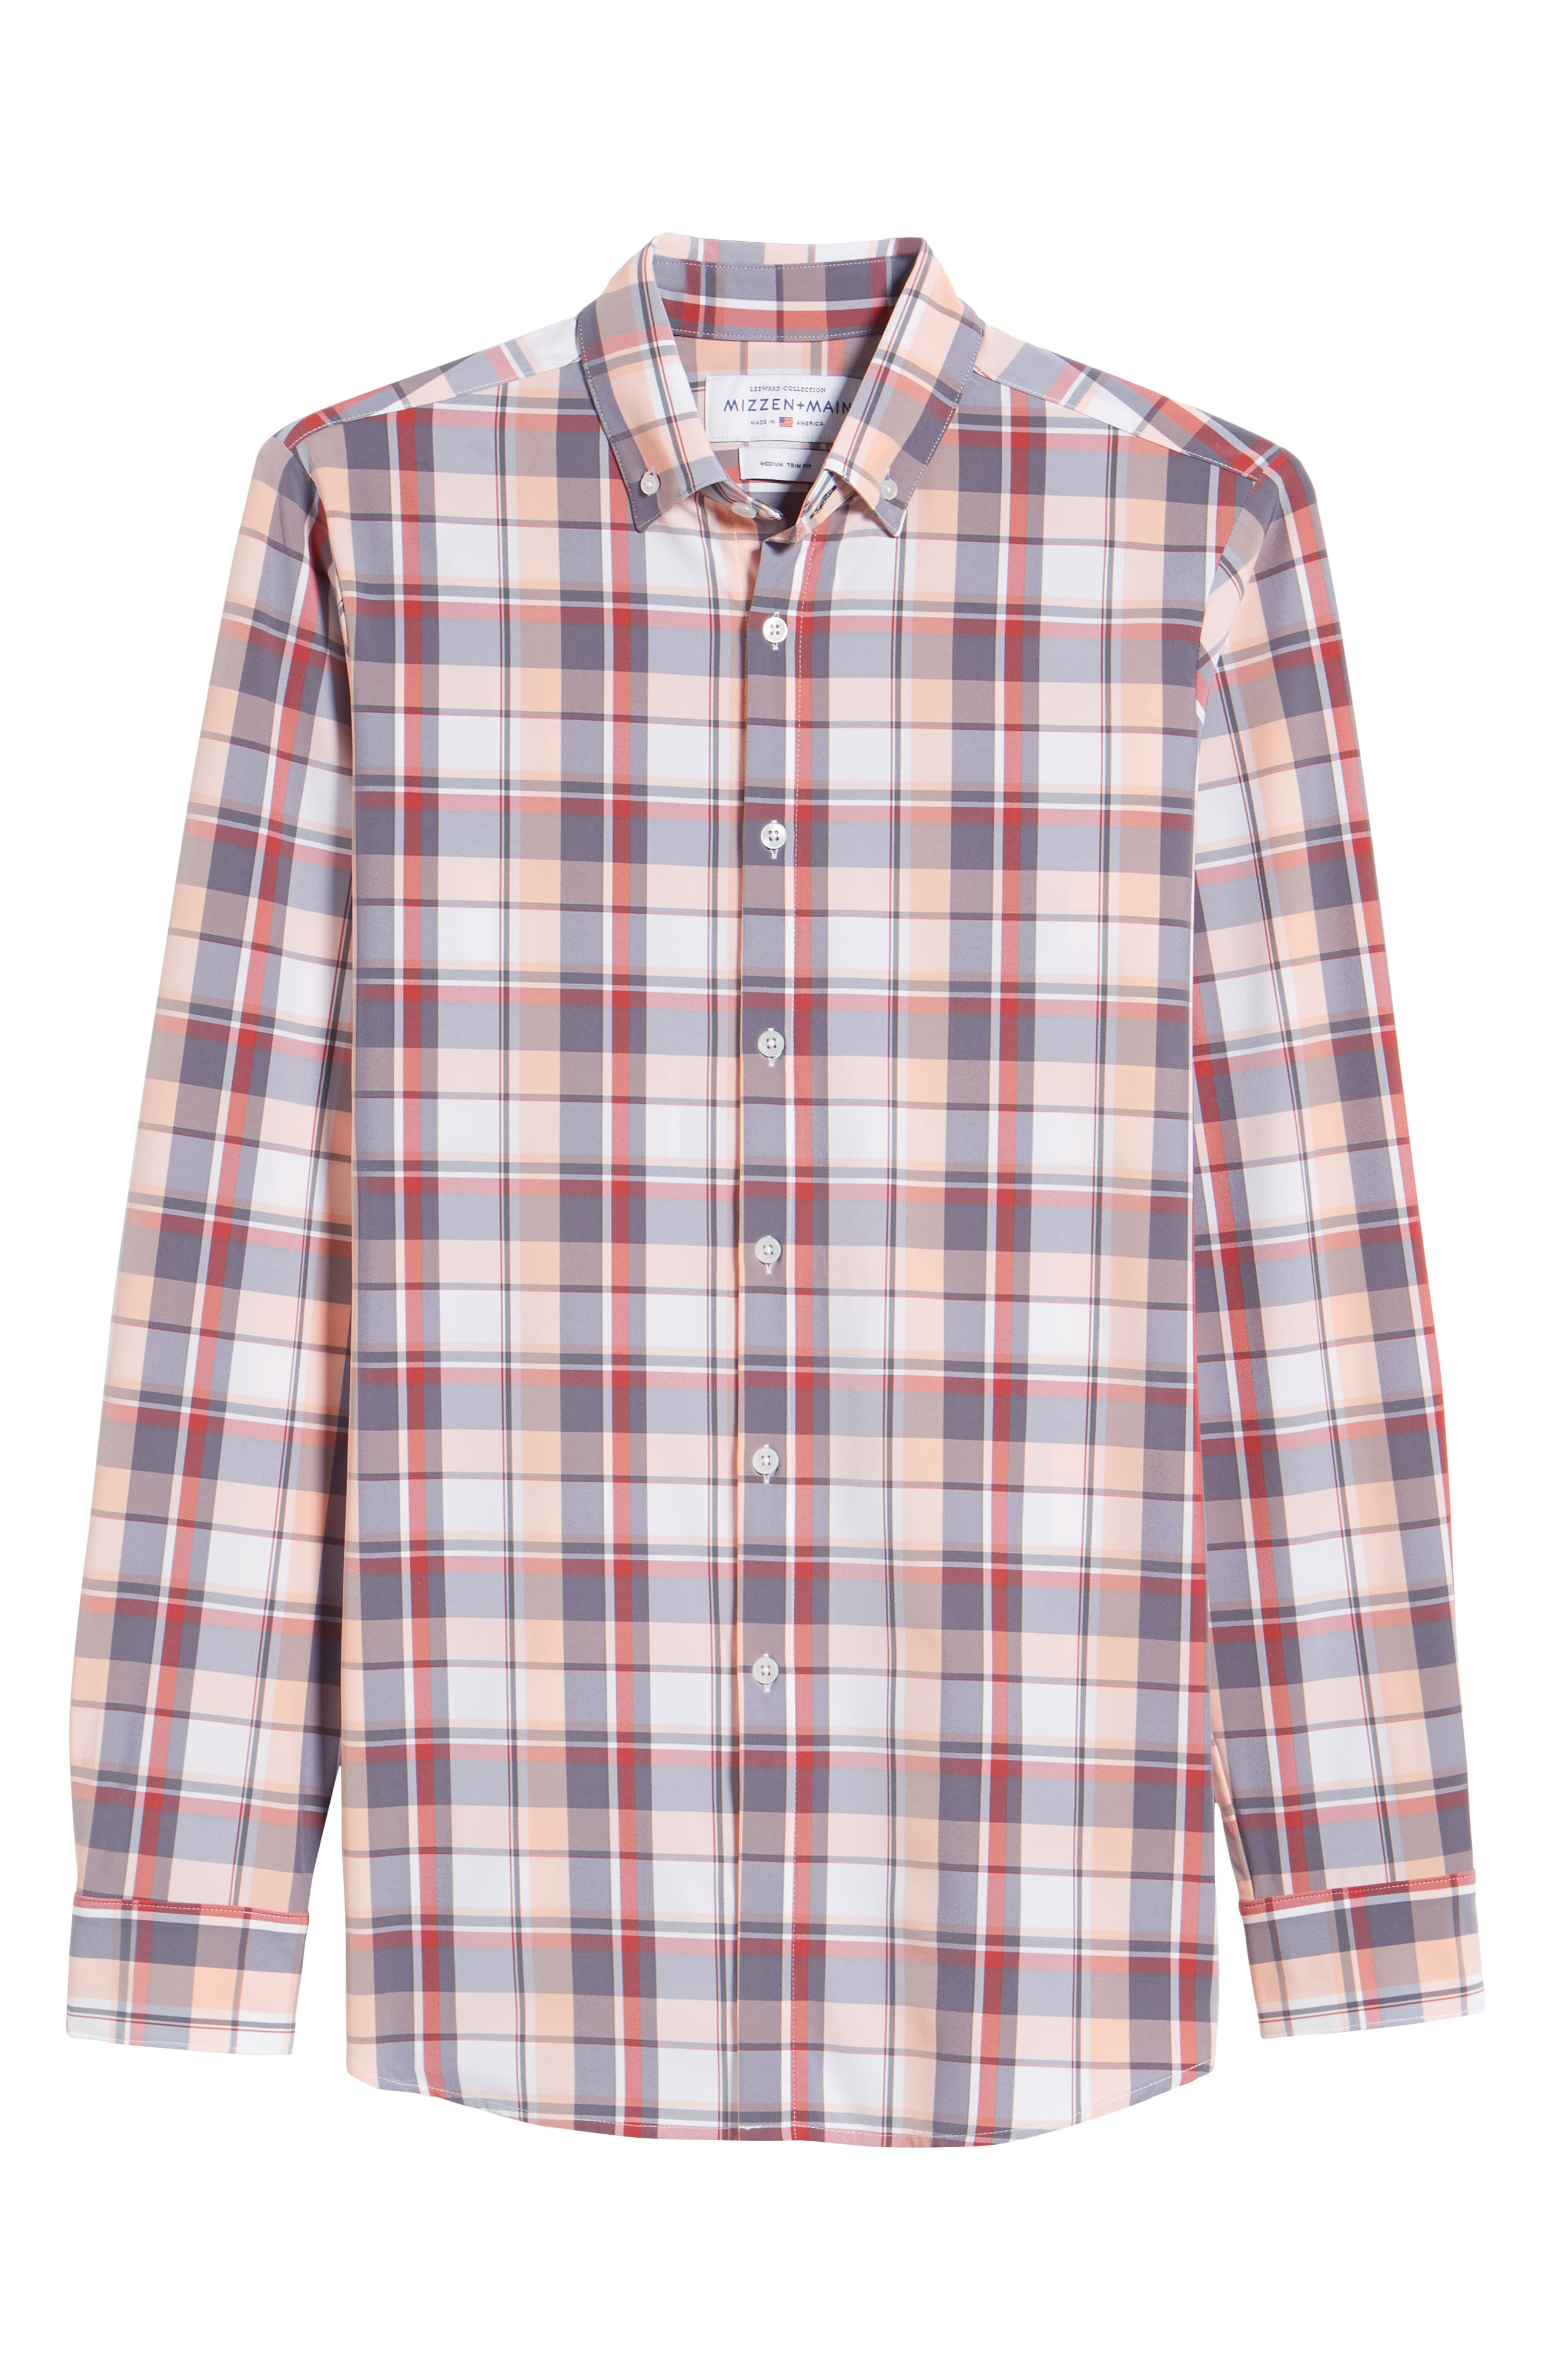 Brazos Slim Fit Madras Plaid Performance Sport Shirt,                             Alternate thumbnail 6, color,                             Peach